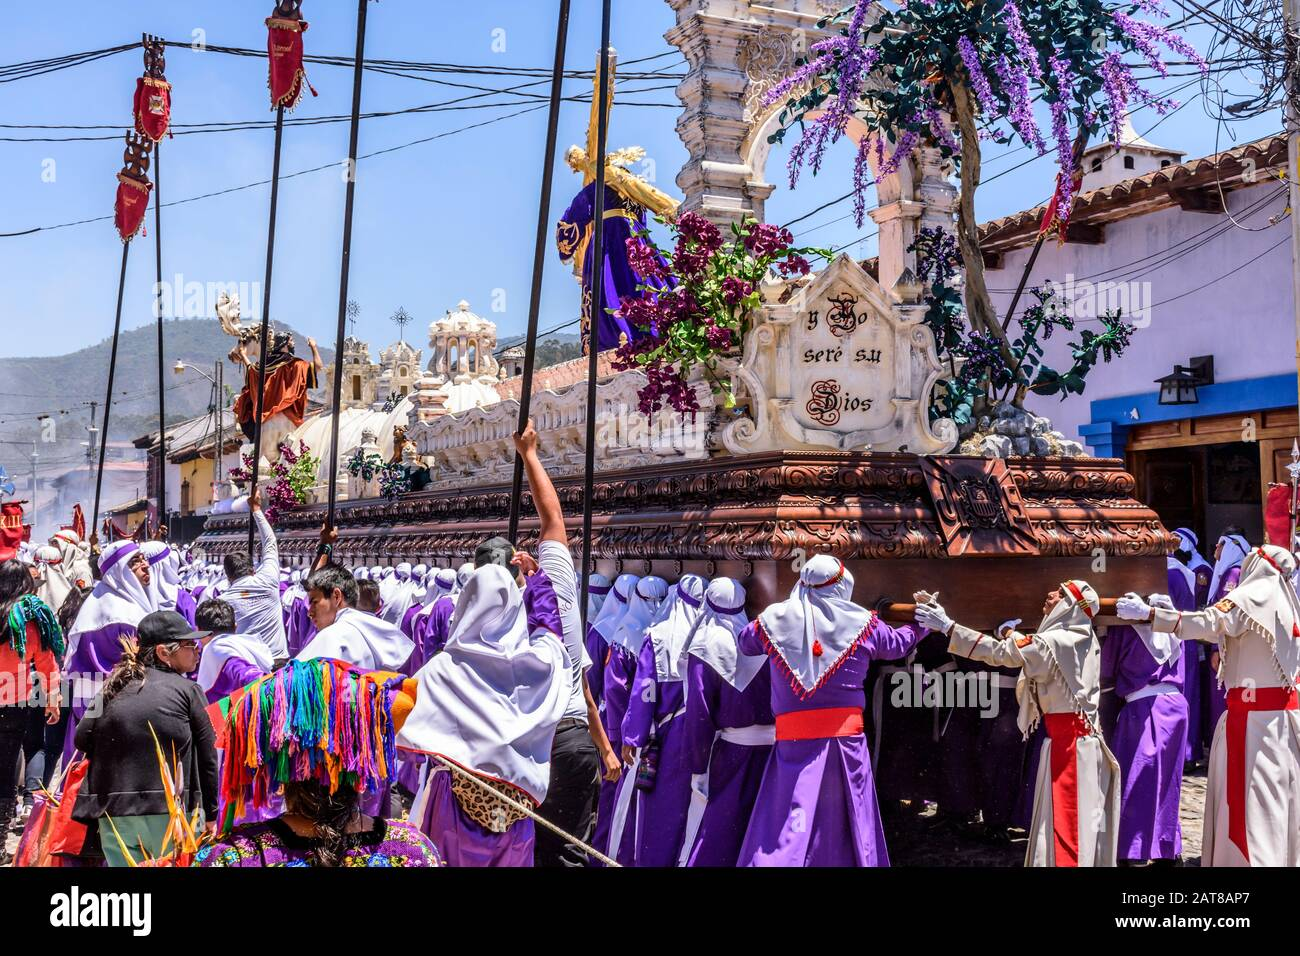 Antigua, Guatemala -  April 14, 2019: Palm Sunday procession in UNESCO World Heritage Site with famed Holy Week celebrations. Stock Photo